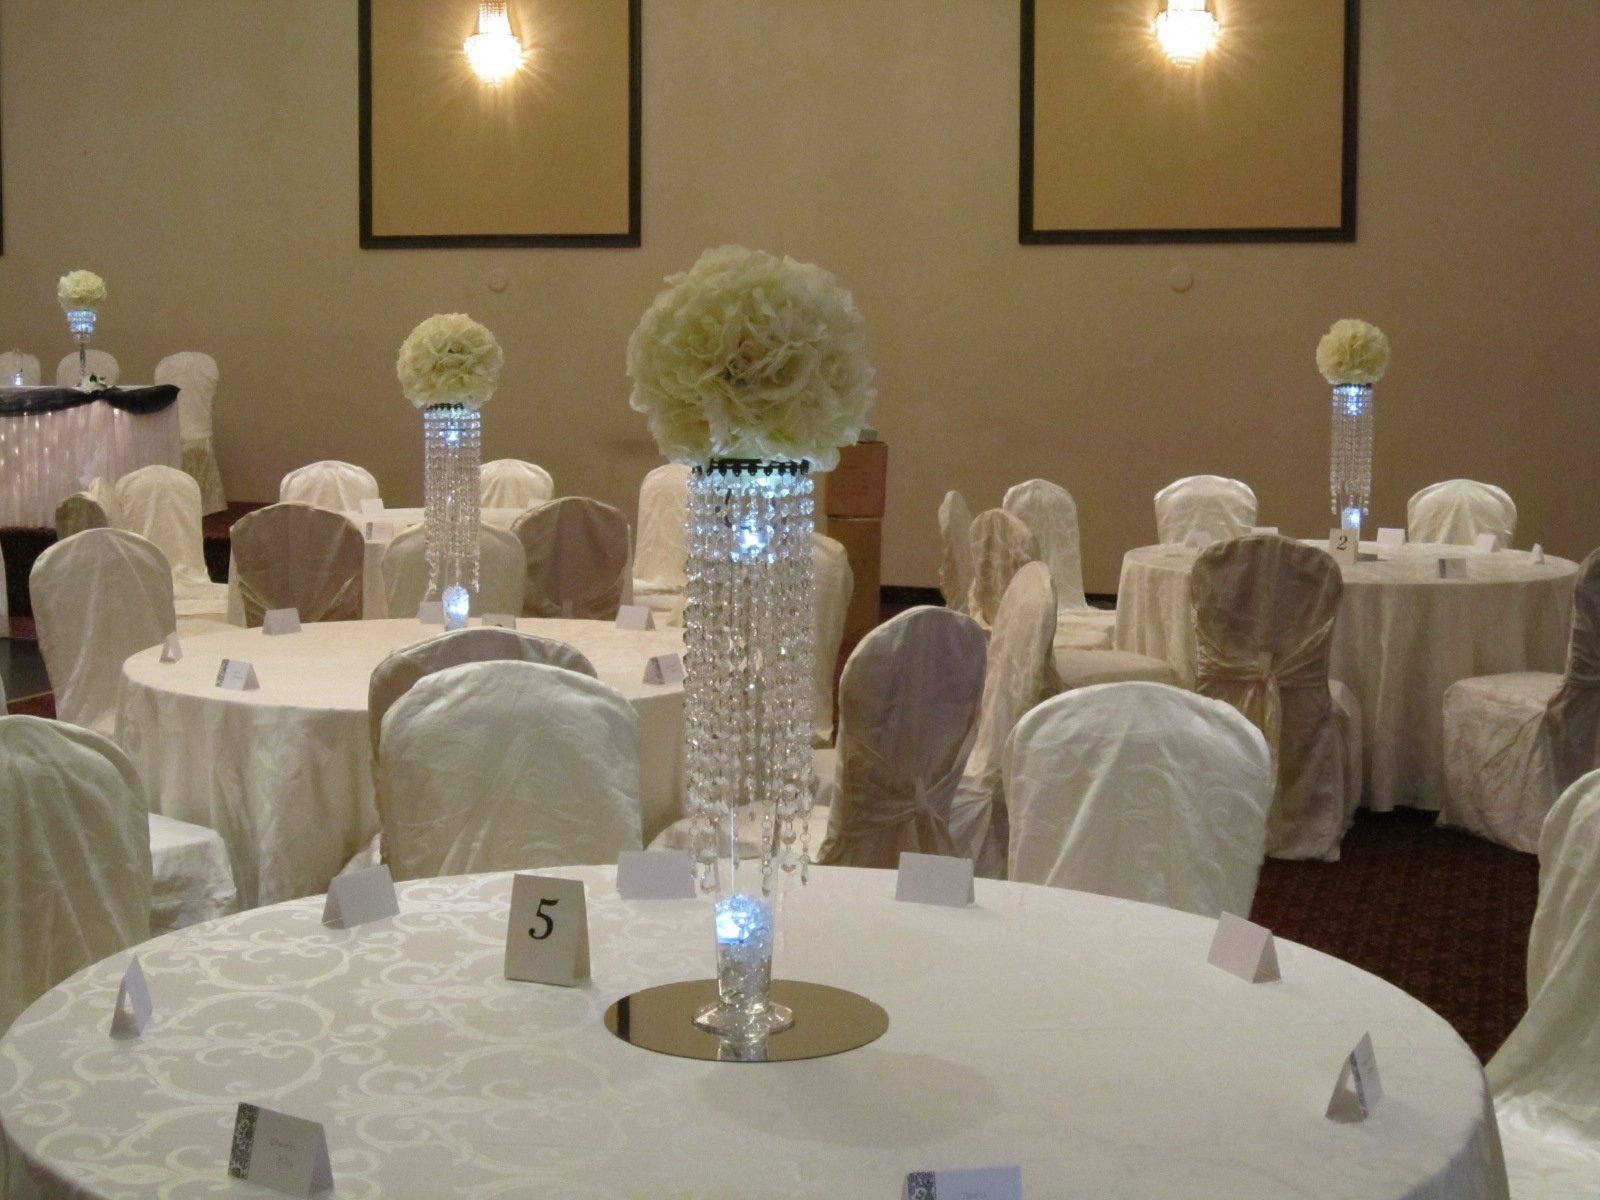 10 Fashionable Wedding Centerpiece Ideas Without Flowers centerpieces for weddings crystal centerpieces at weddings set 2020